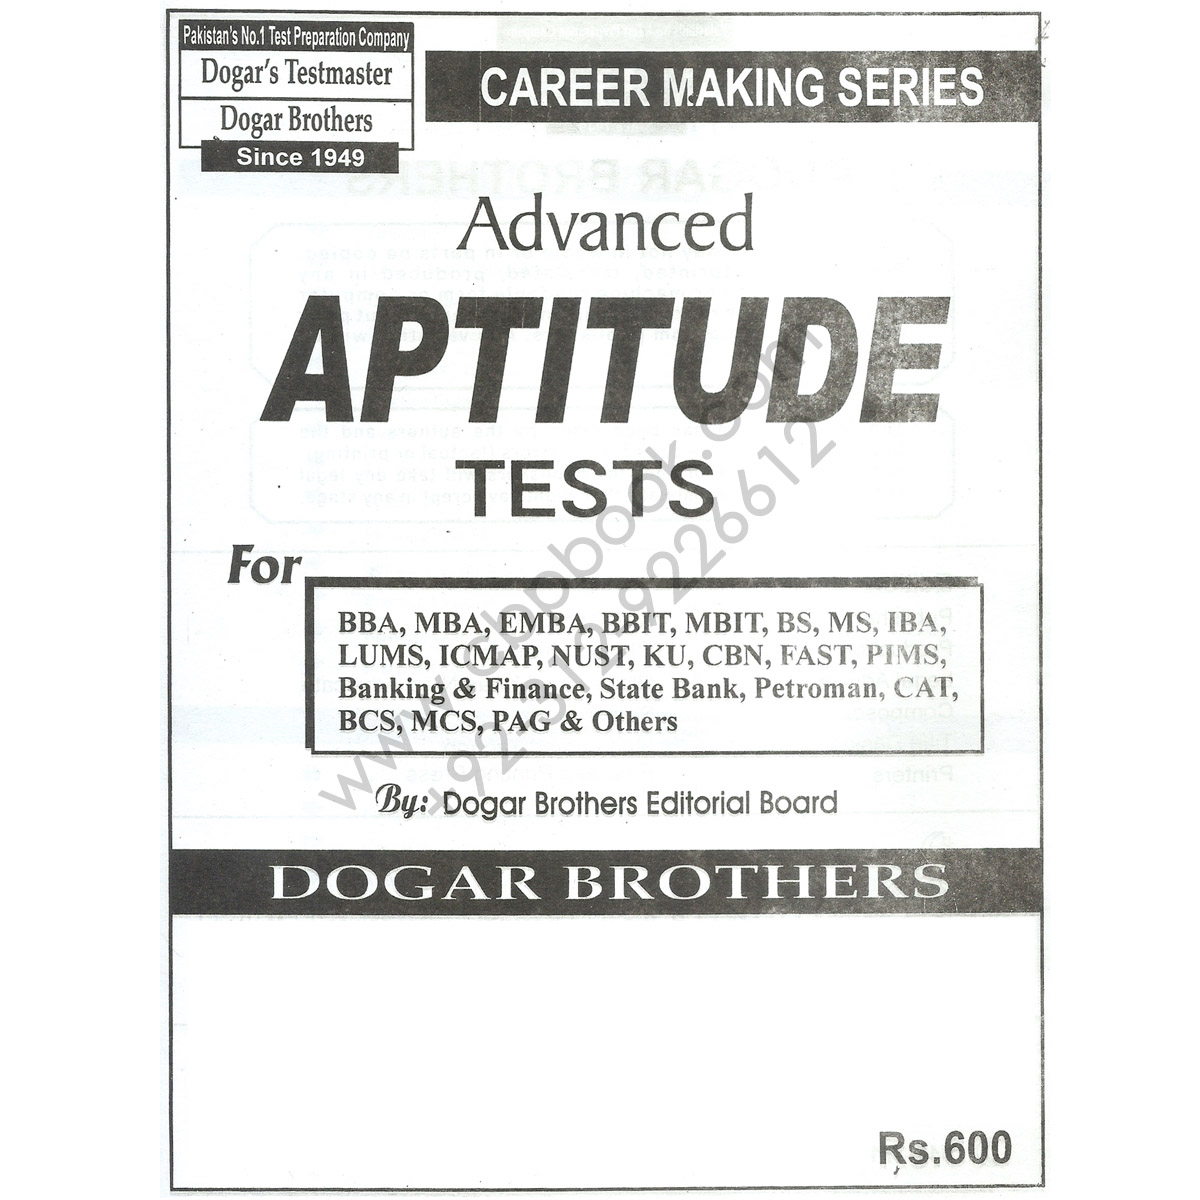 advanced aptitude test for bcat by dogar brothers cbpbook qadvanced aptitude test 2015 for bcat by dogar brothers 1